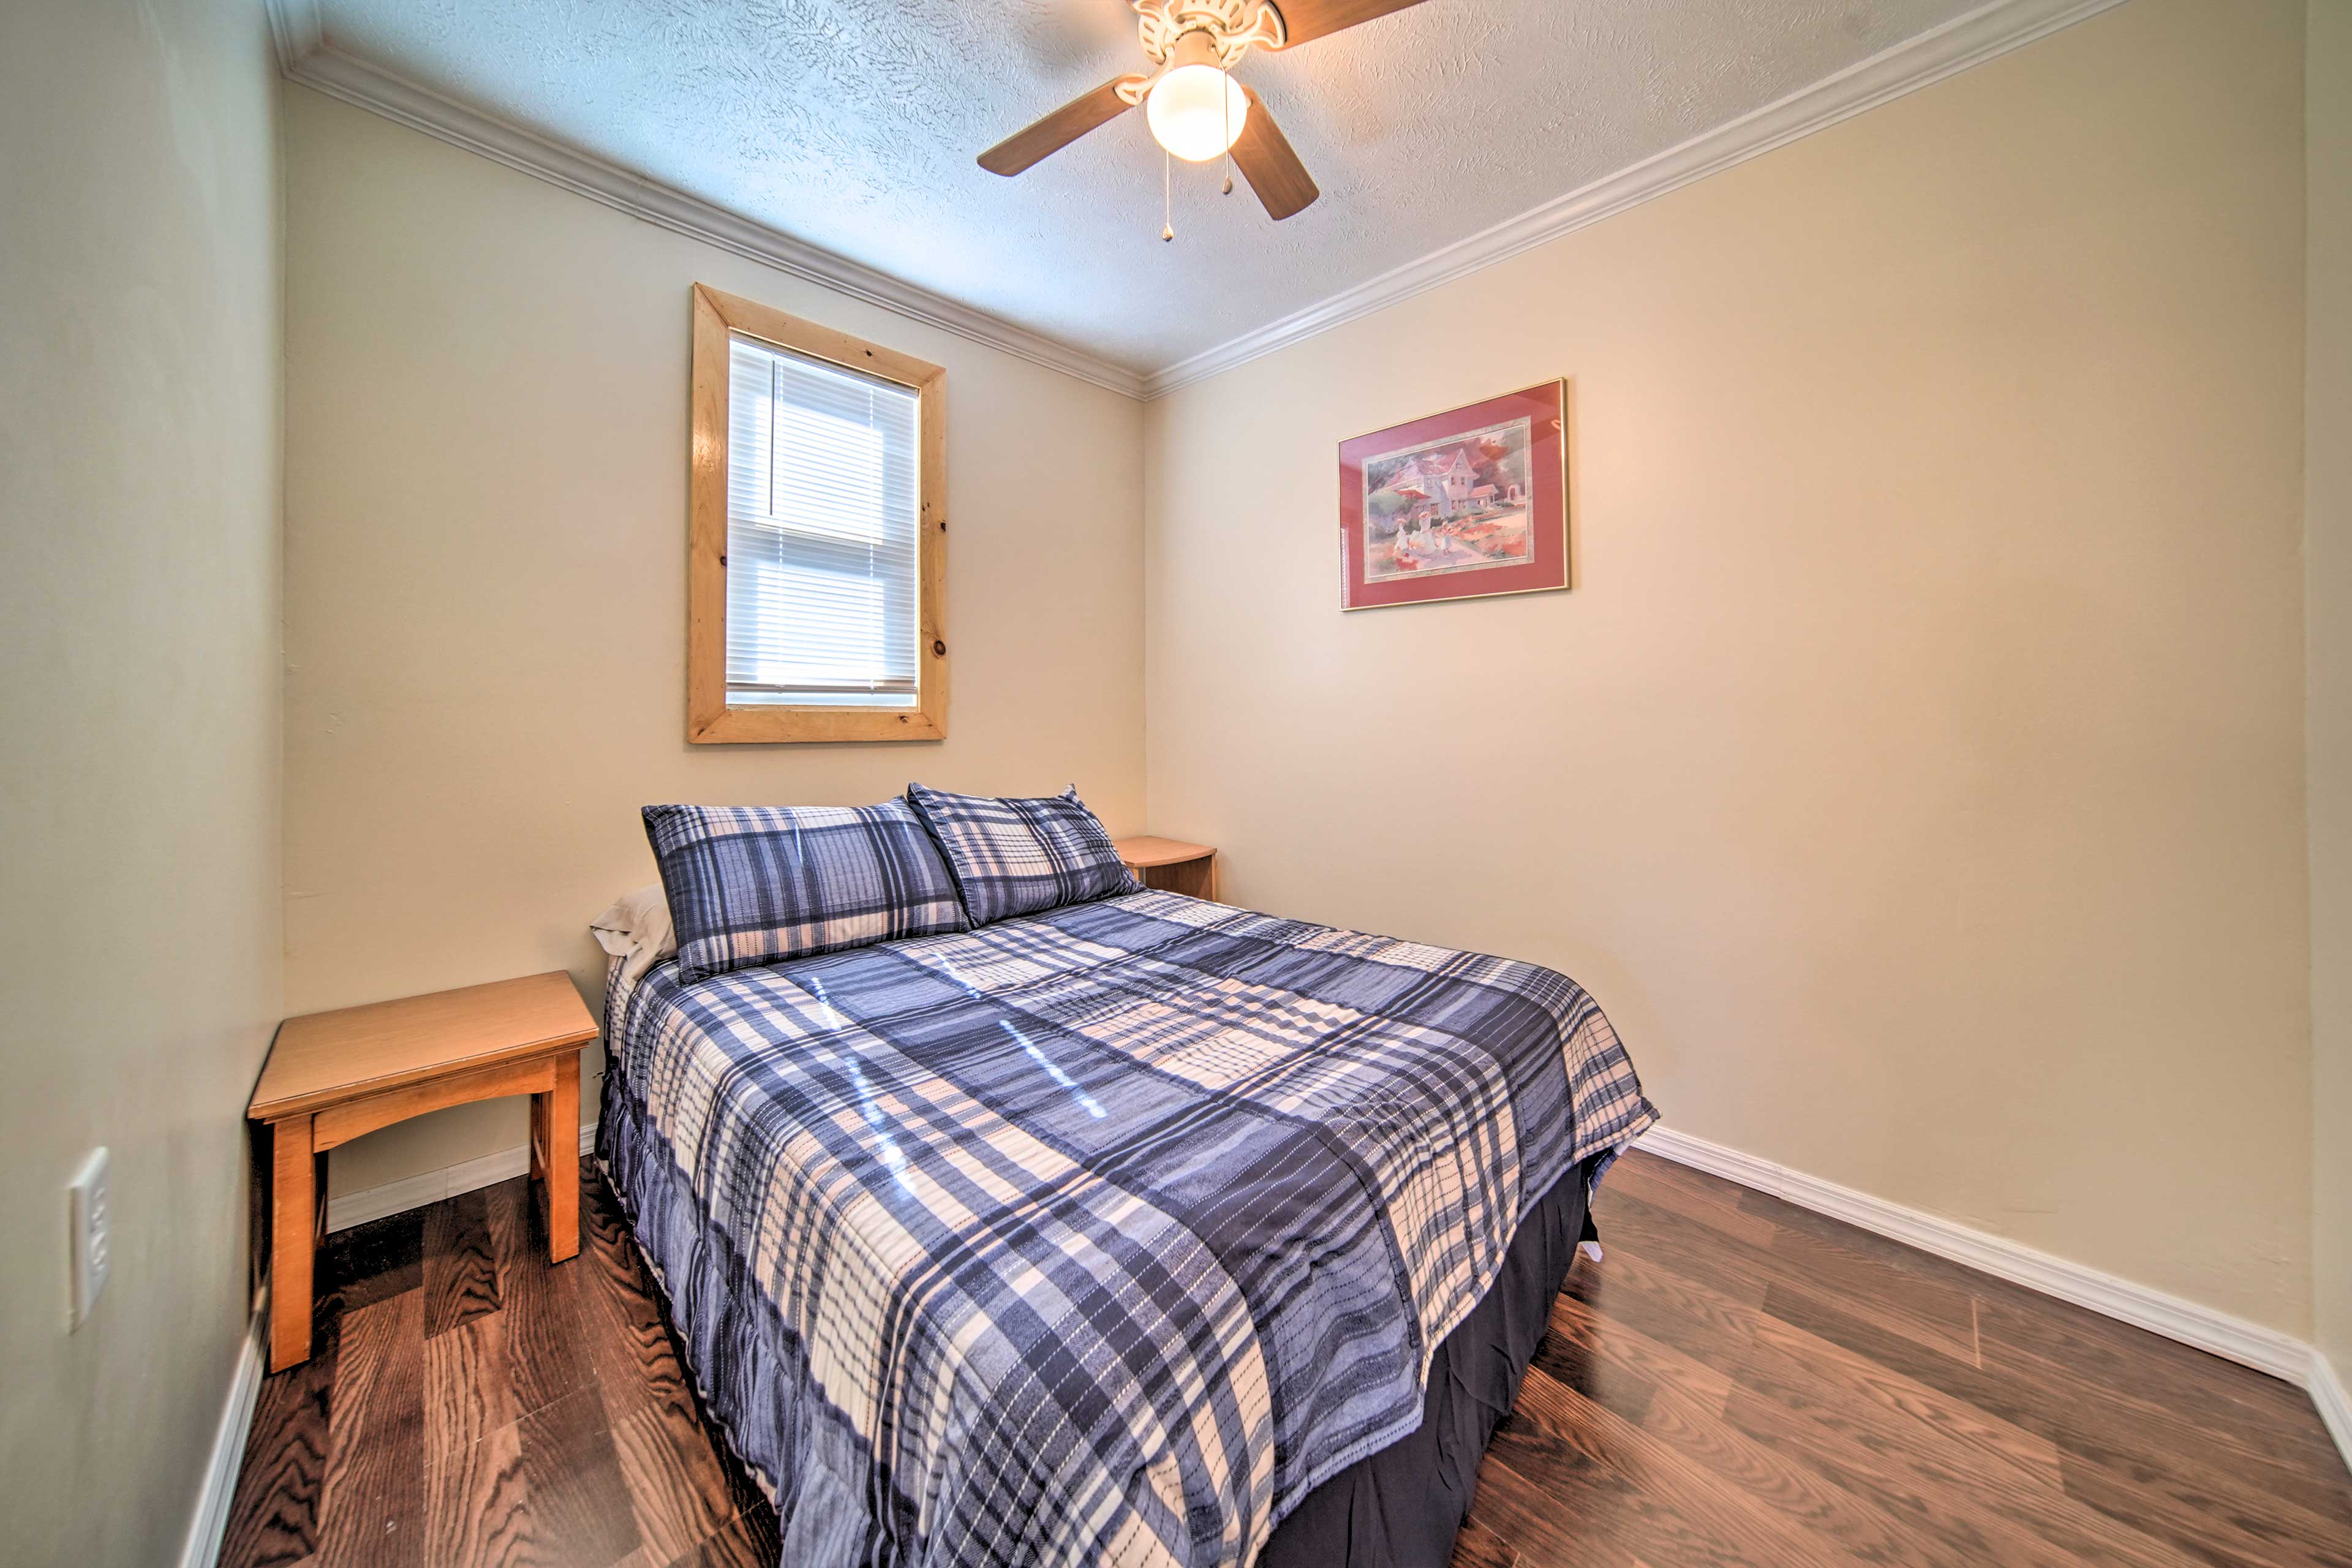 Two guests can share the comfort of this full bed.